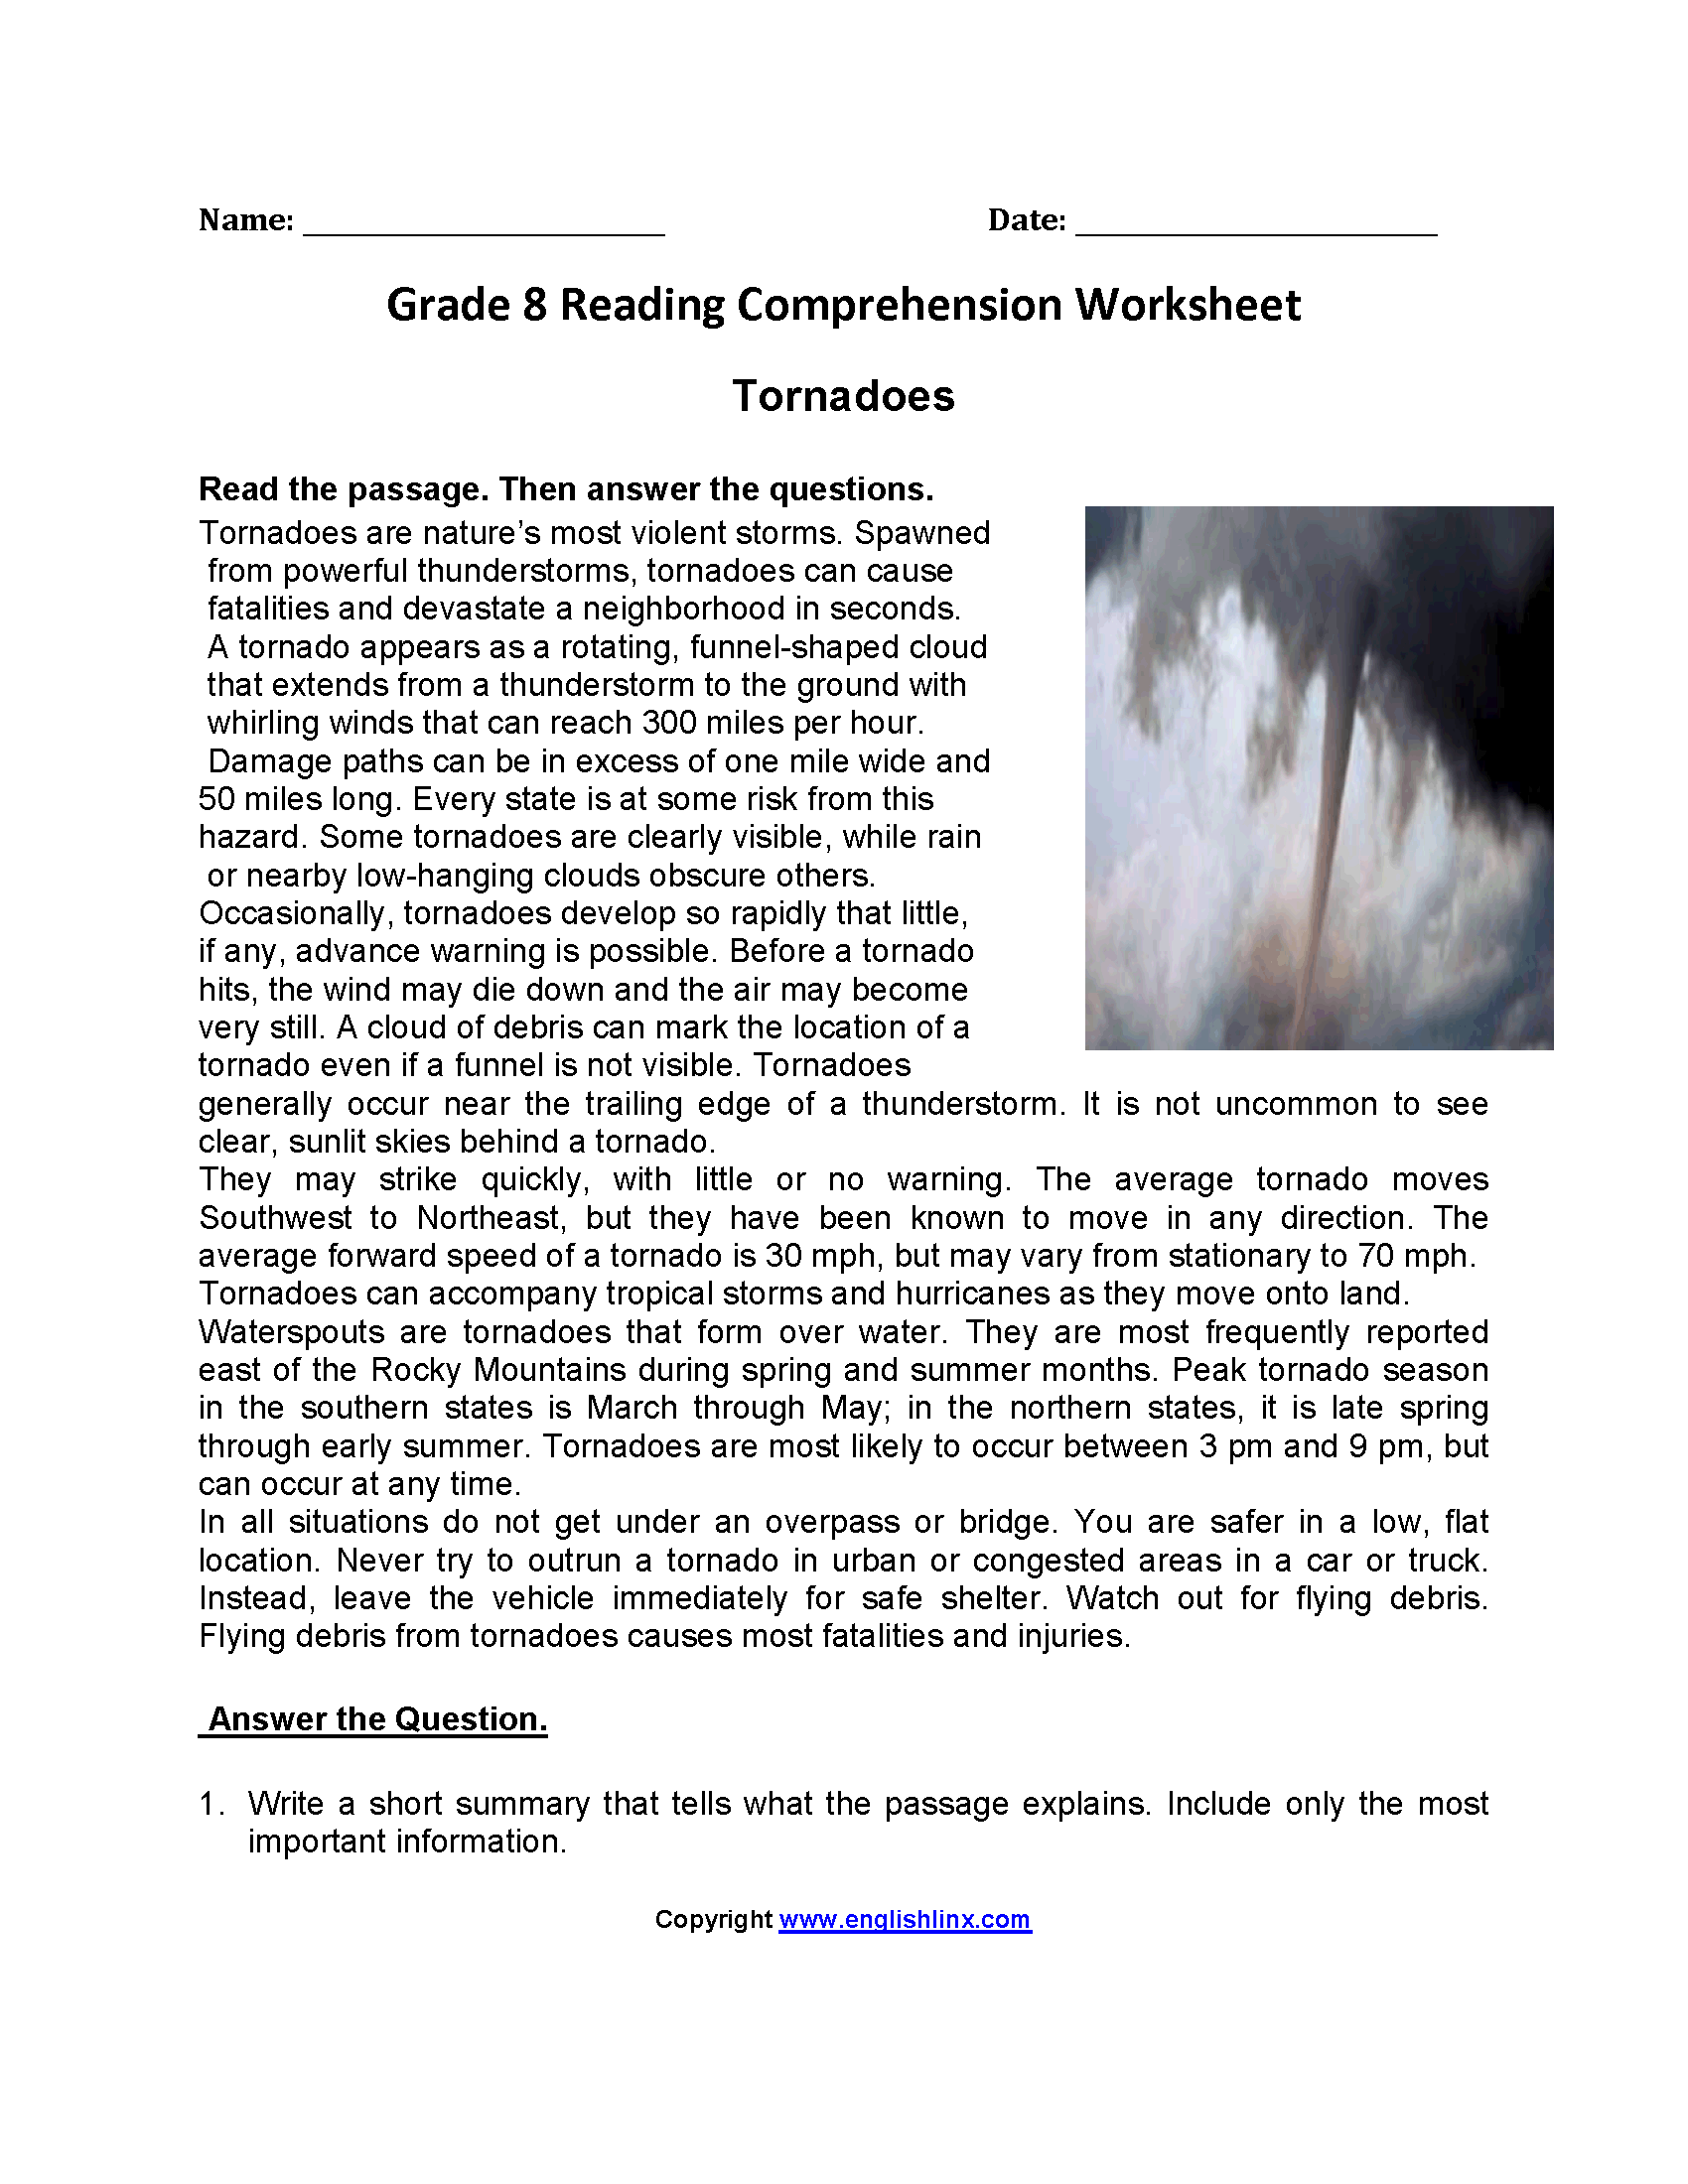 Worksheets Reading Worksheets 8th Grade reading worksheets eighth grade worksheets